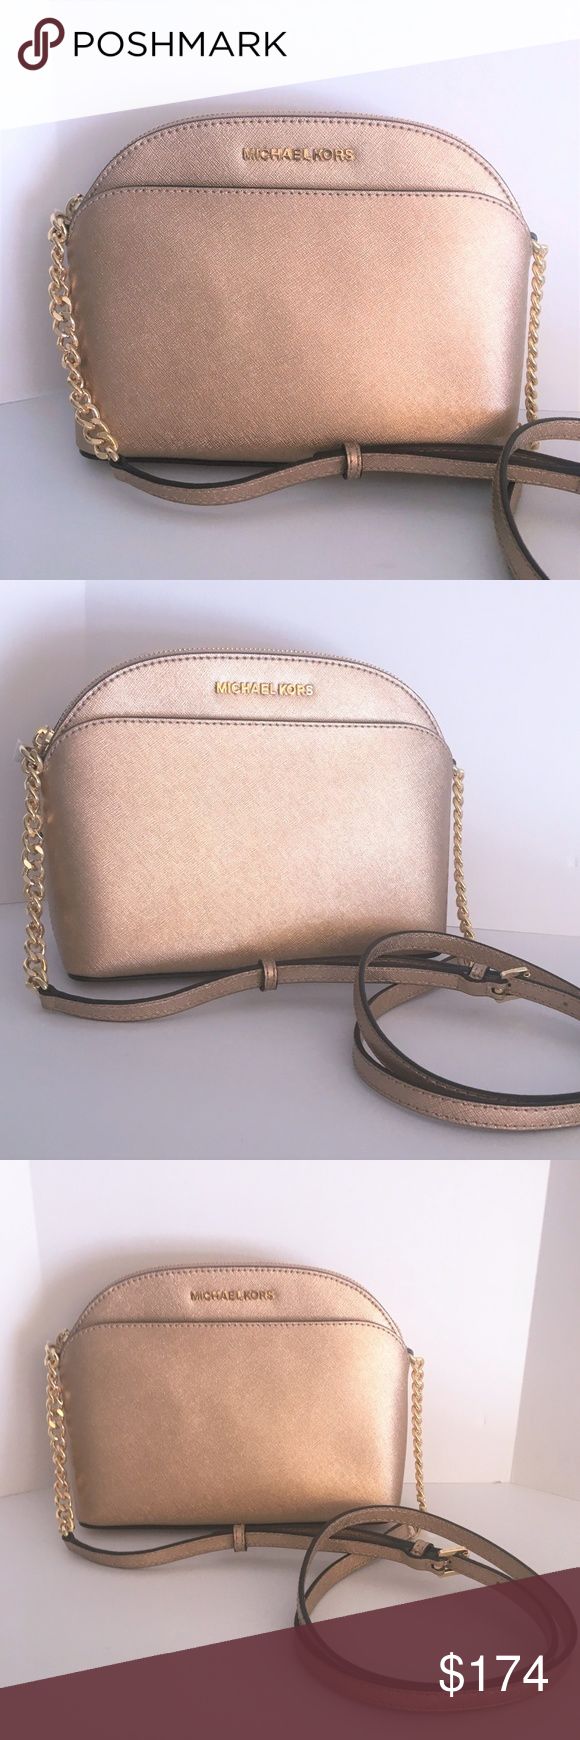 51fc89e1c621 Michael Kors Emmy Crossbody - Rose Gold Leather This gorgeous EMMY Medium  Crossbody from Michael Kors